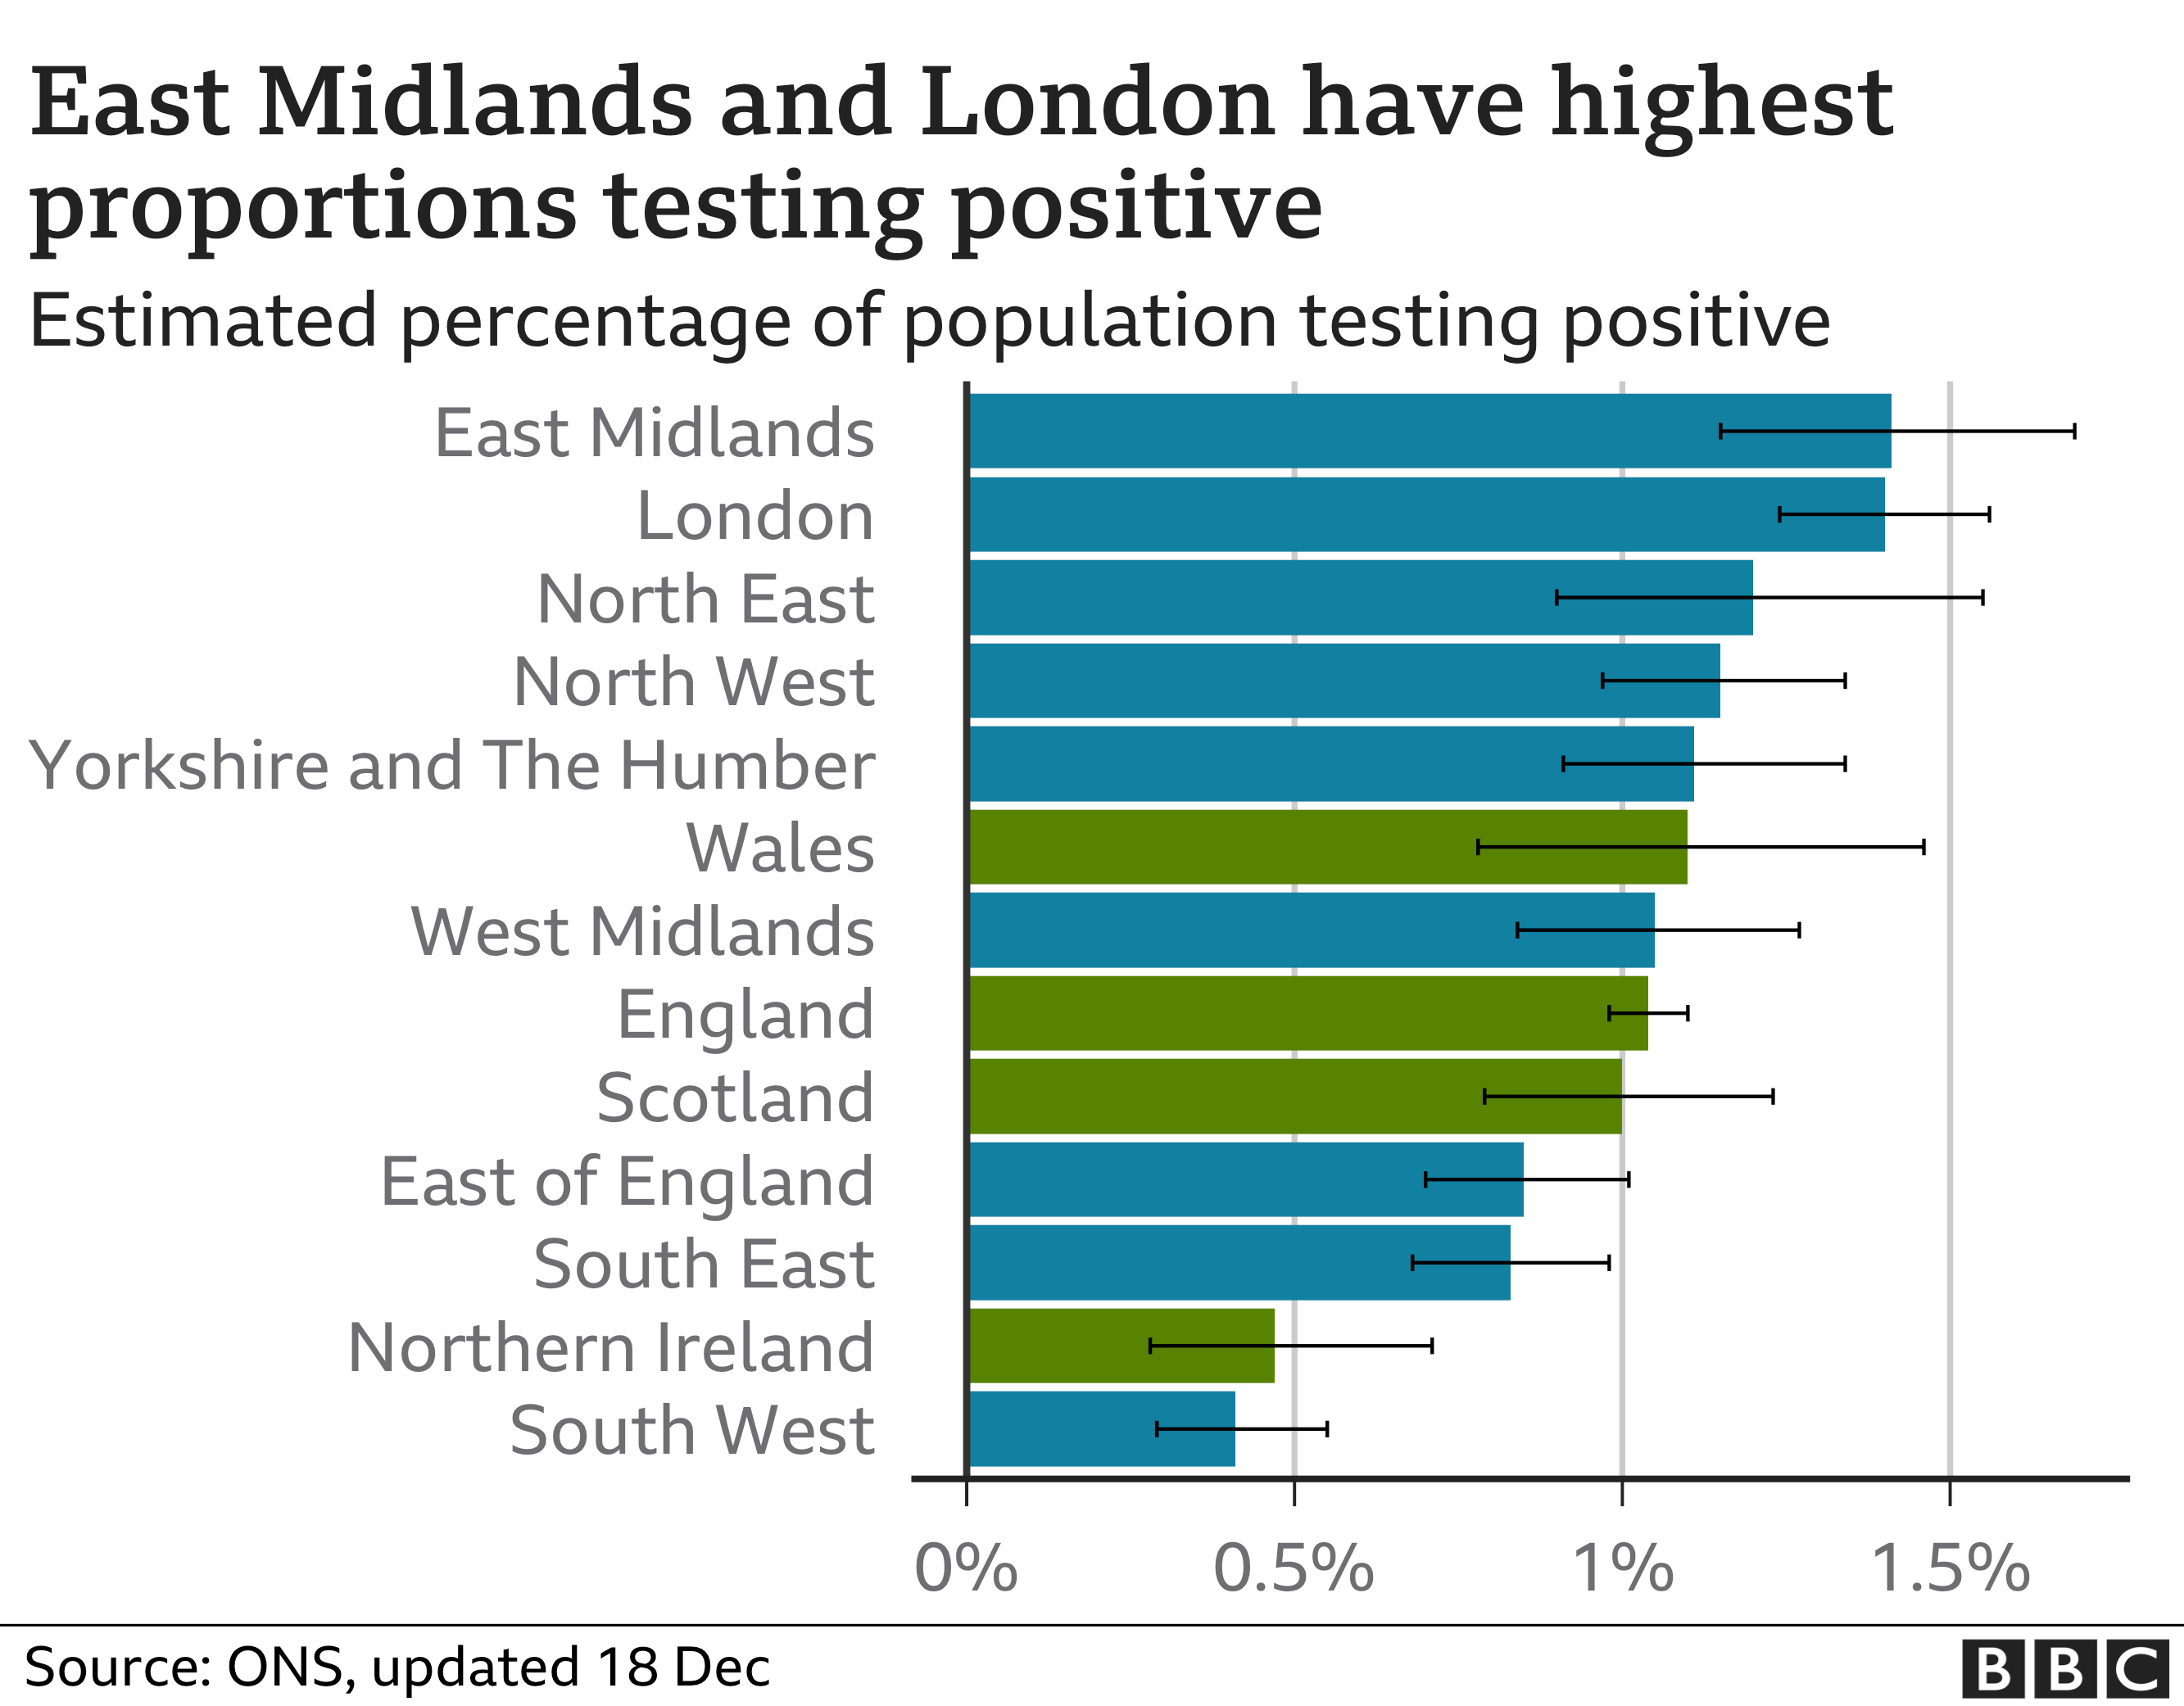 east midlands and london have highest proportions testing positive - chart